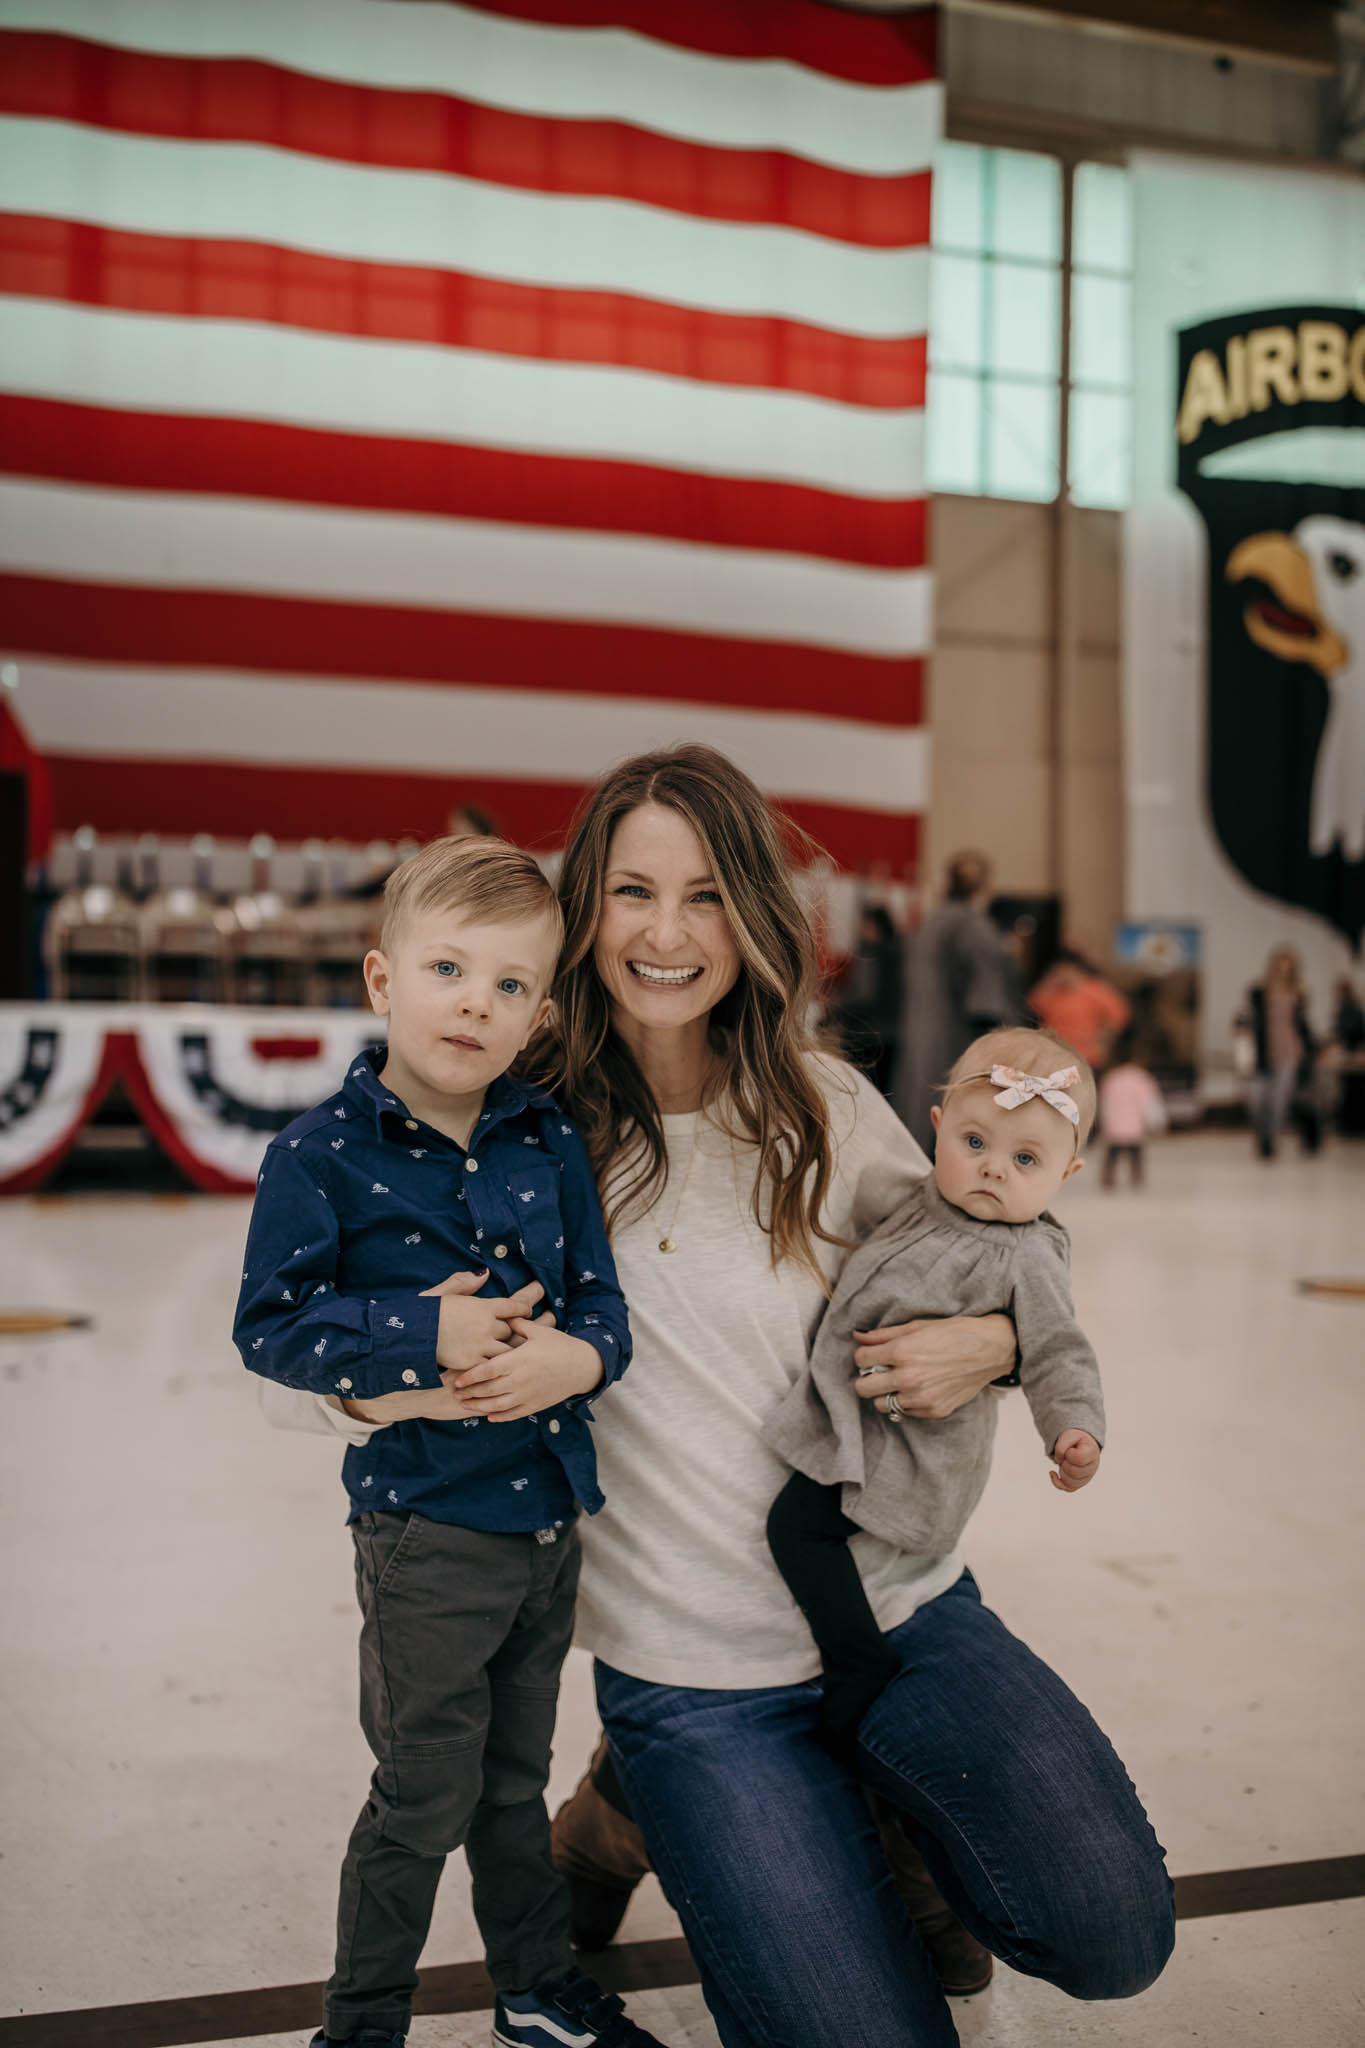 Army Wife Standing with Children infron of Flag